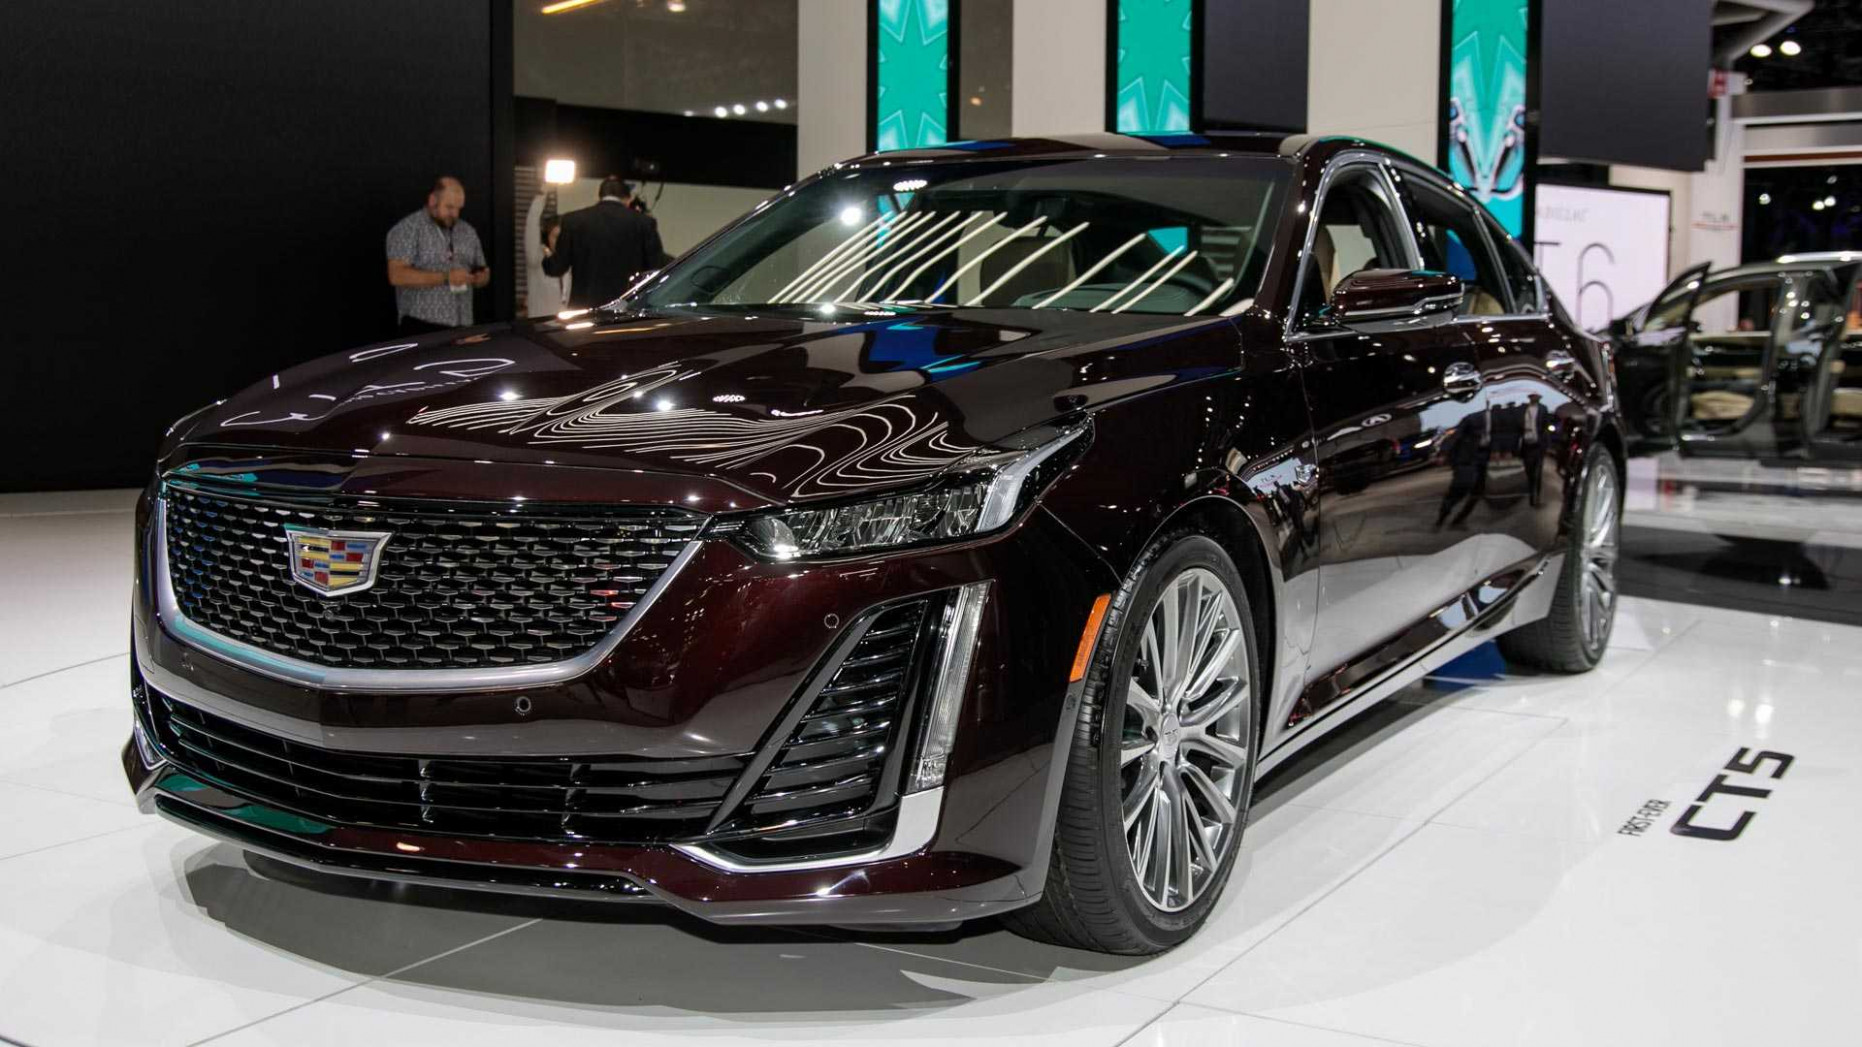 6 Cadillac CT6 Debuts, Says Goodbye To CTS [UPDATE] - 2020 cadillac two door